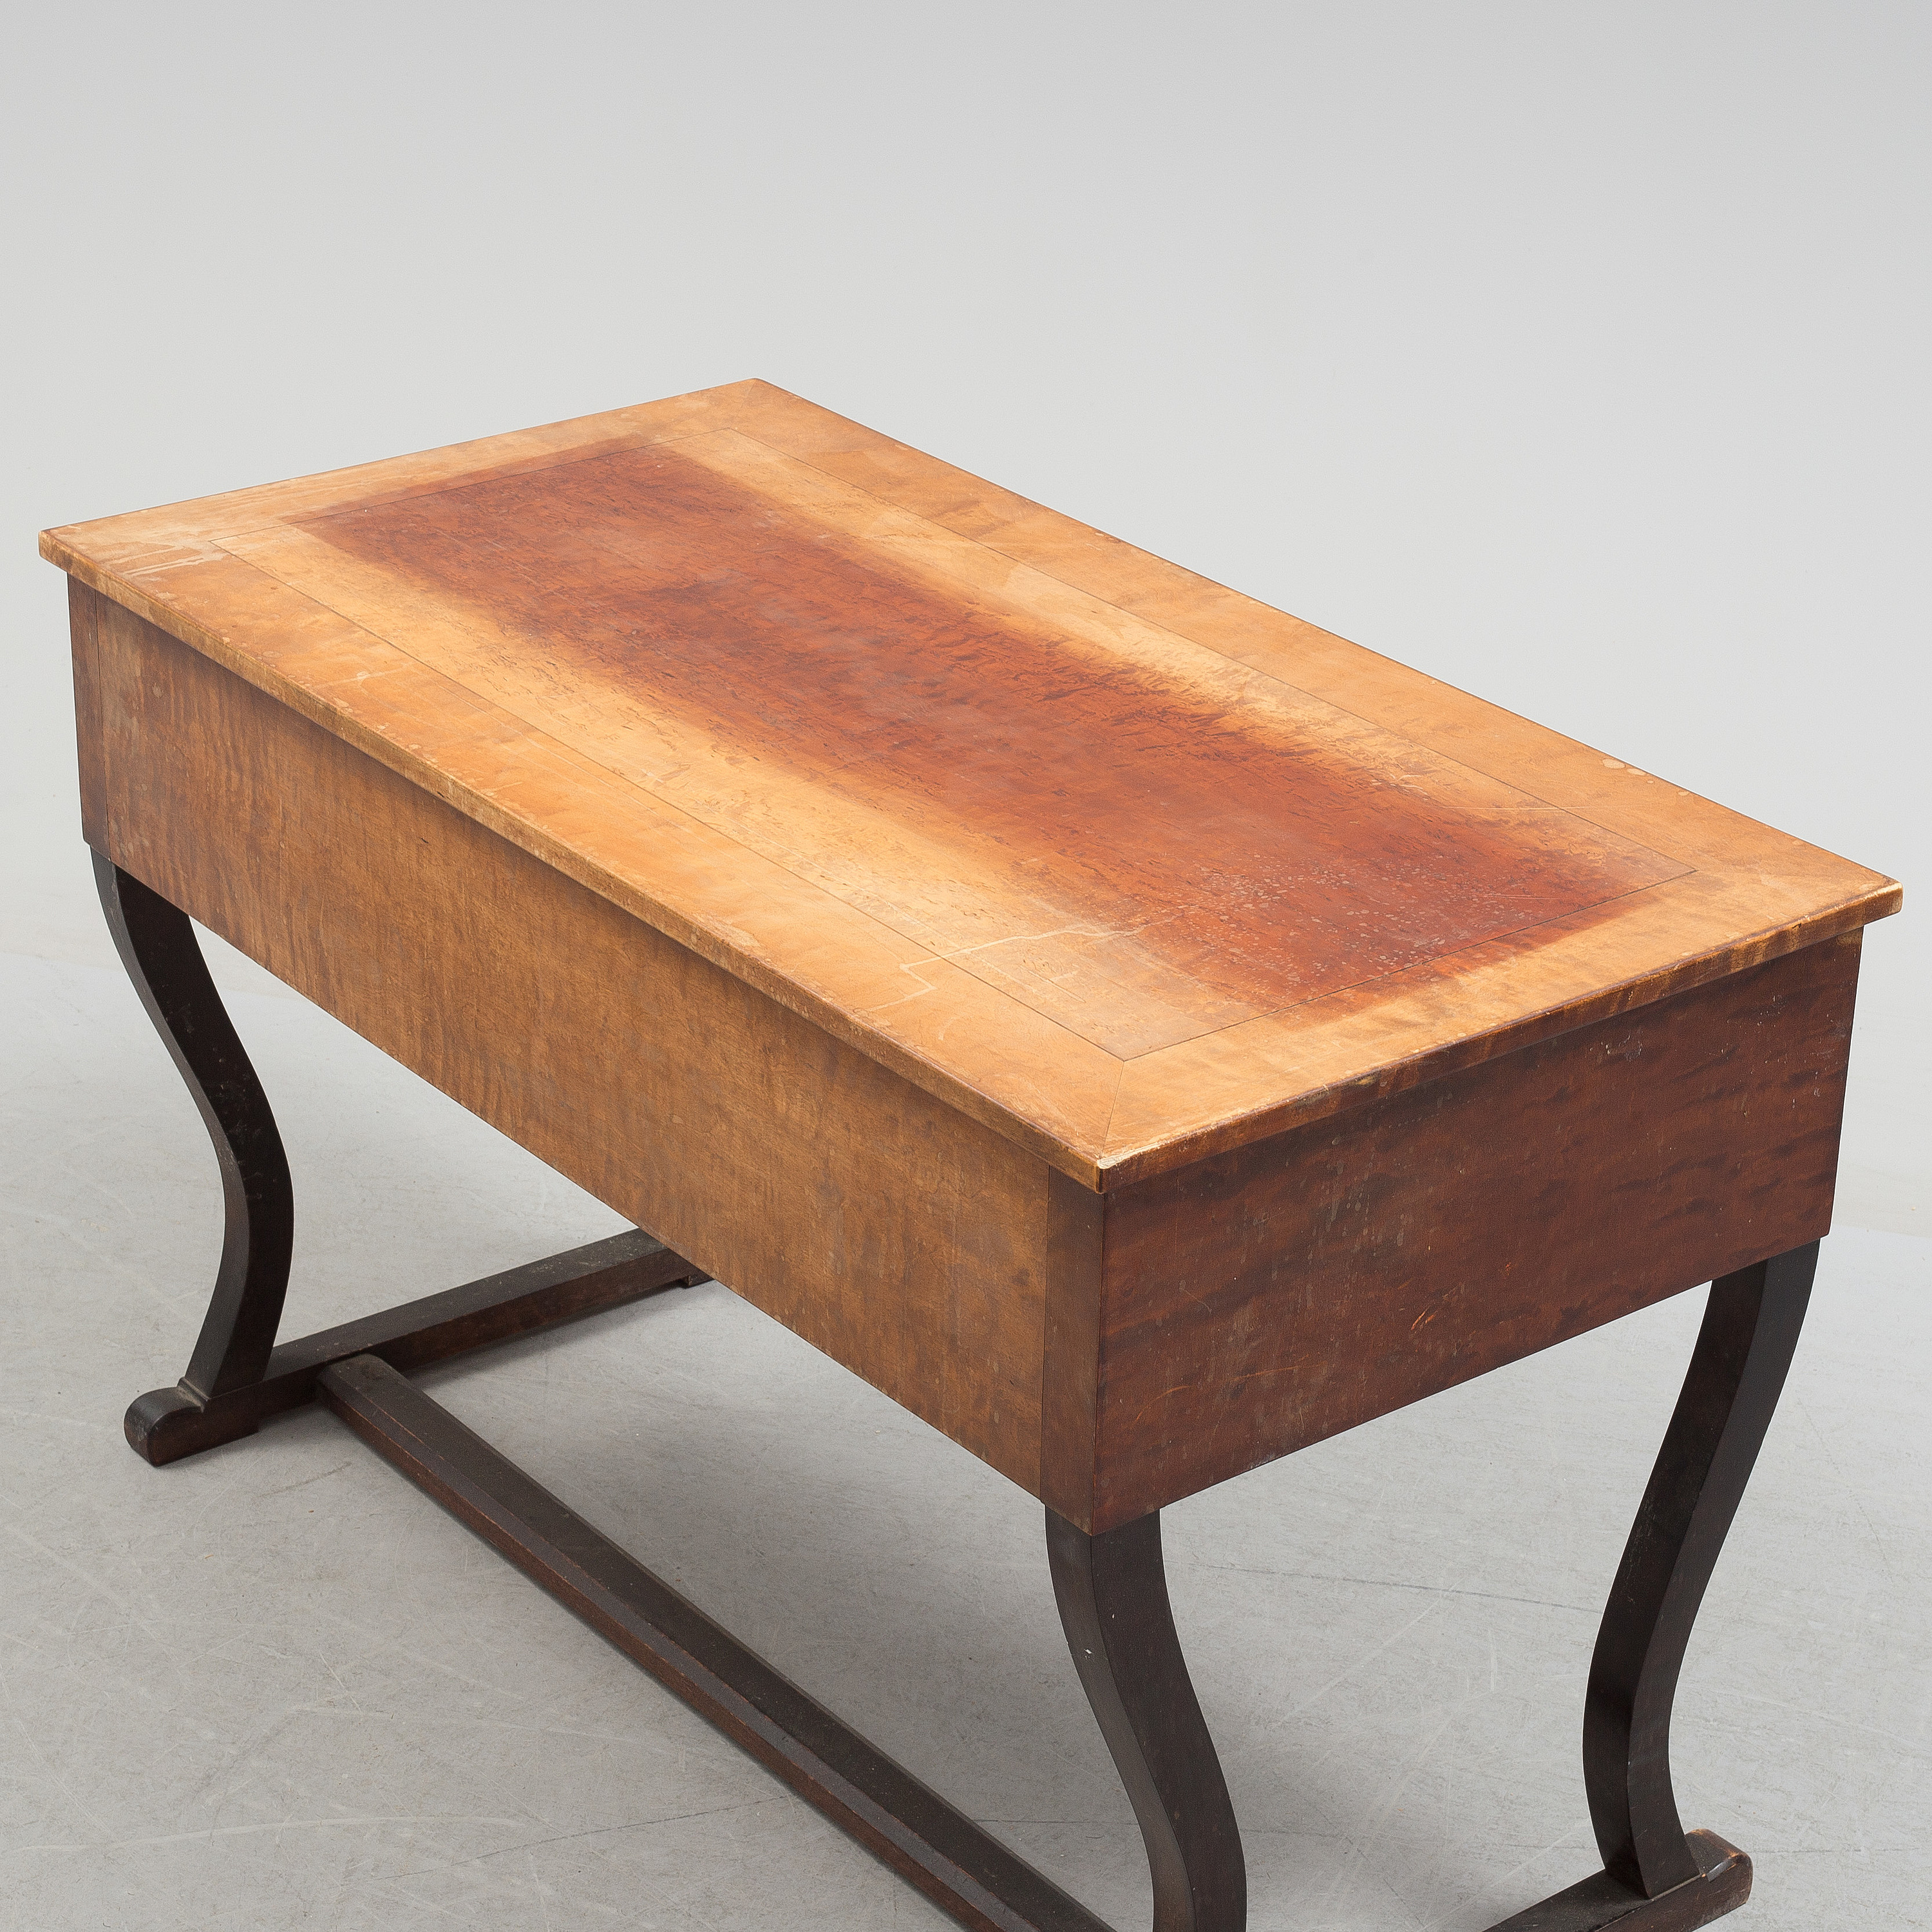 A First Half Of The 20th Century Art Deco Style Writing Desk Bukowskis